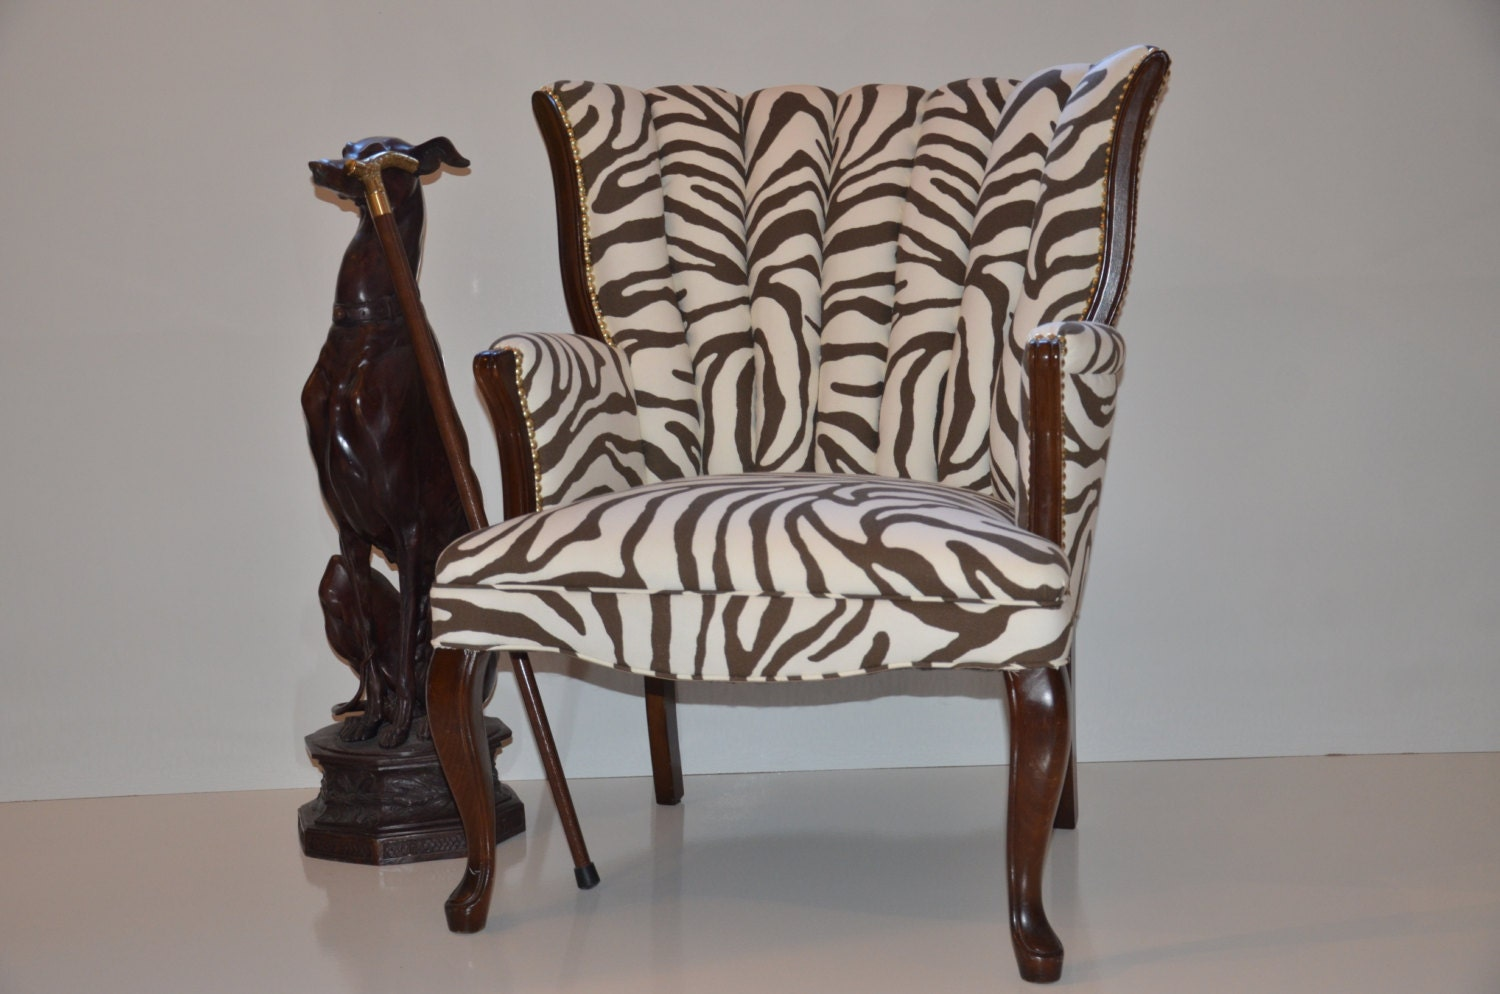 Sold Vintage Shell Back Chair Brown And White Zebra Print